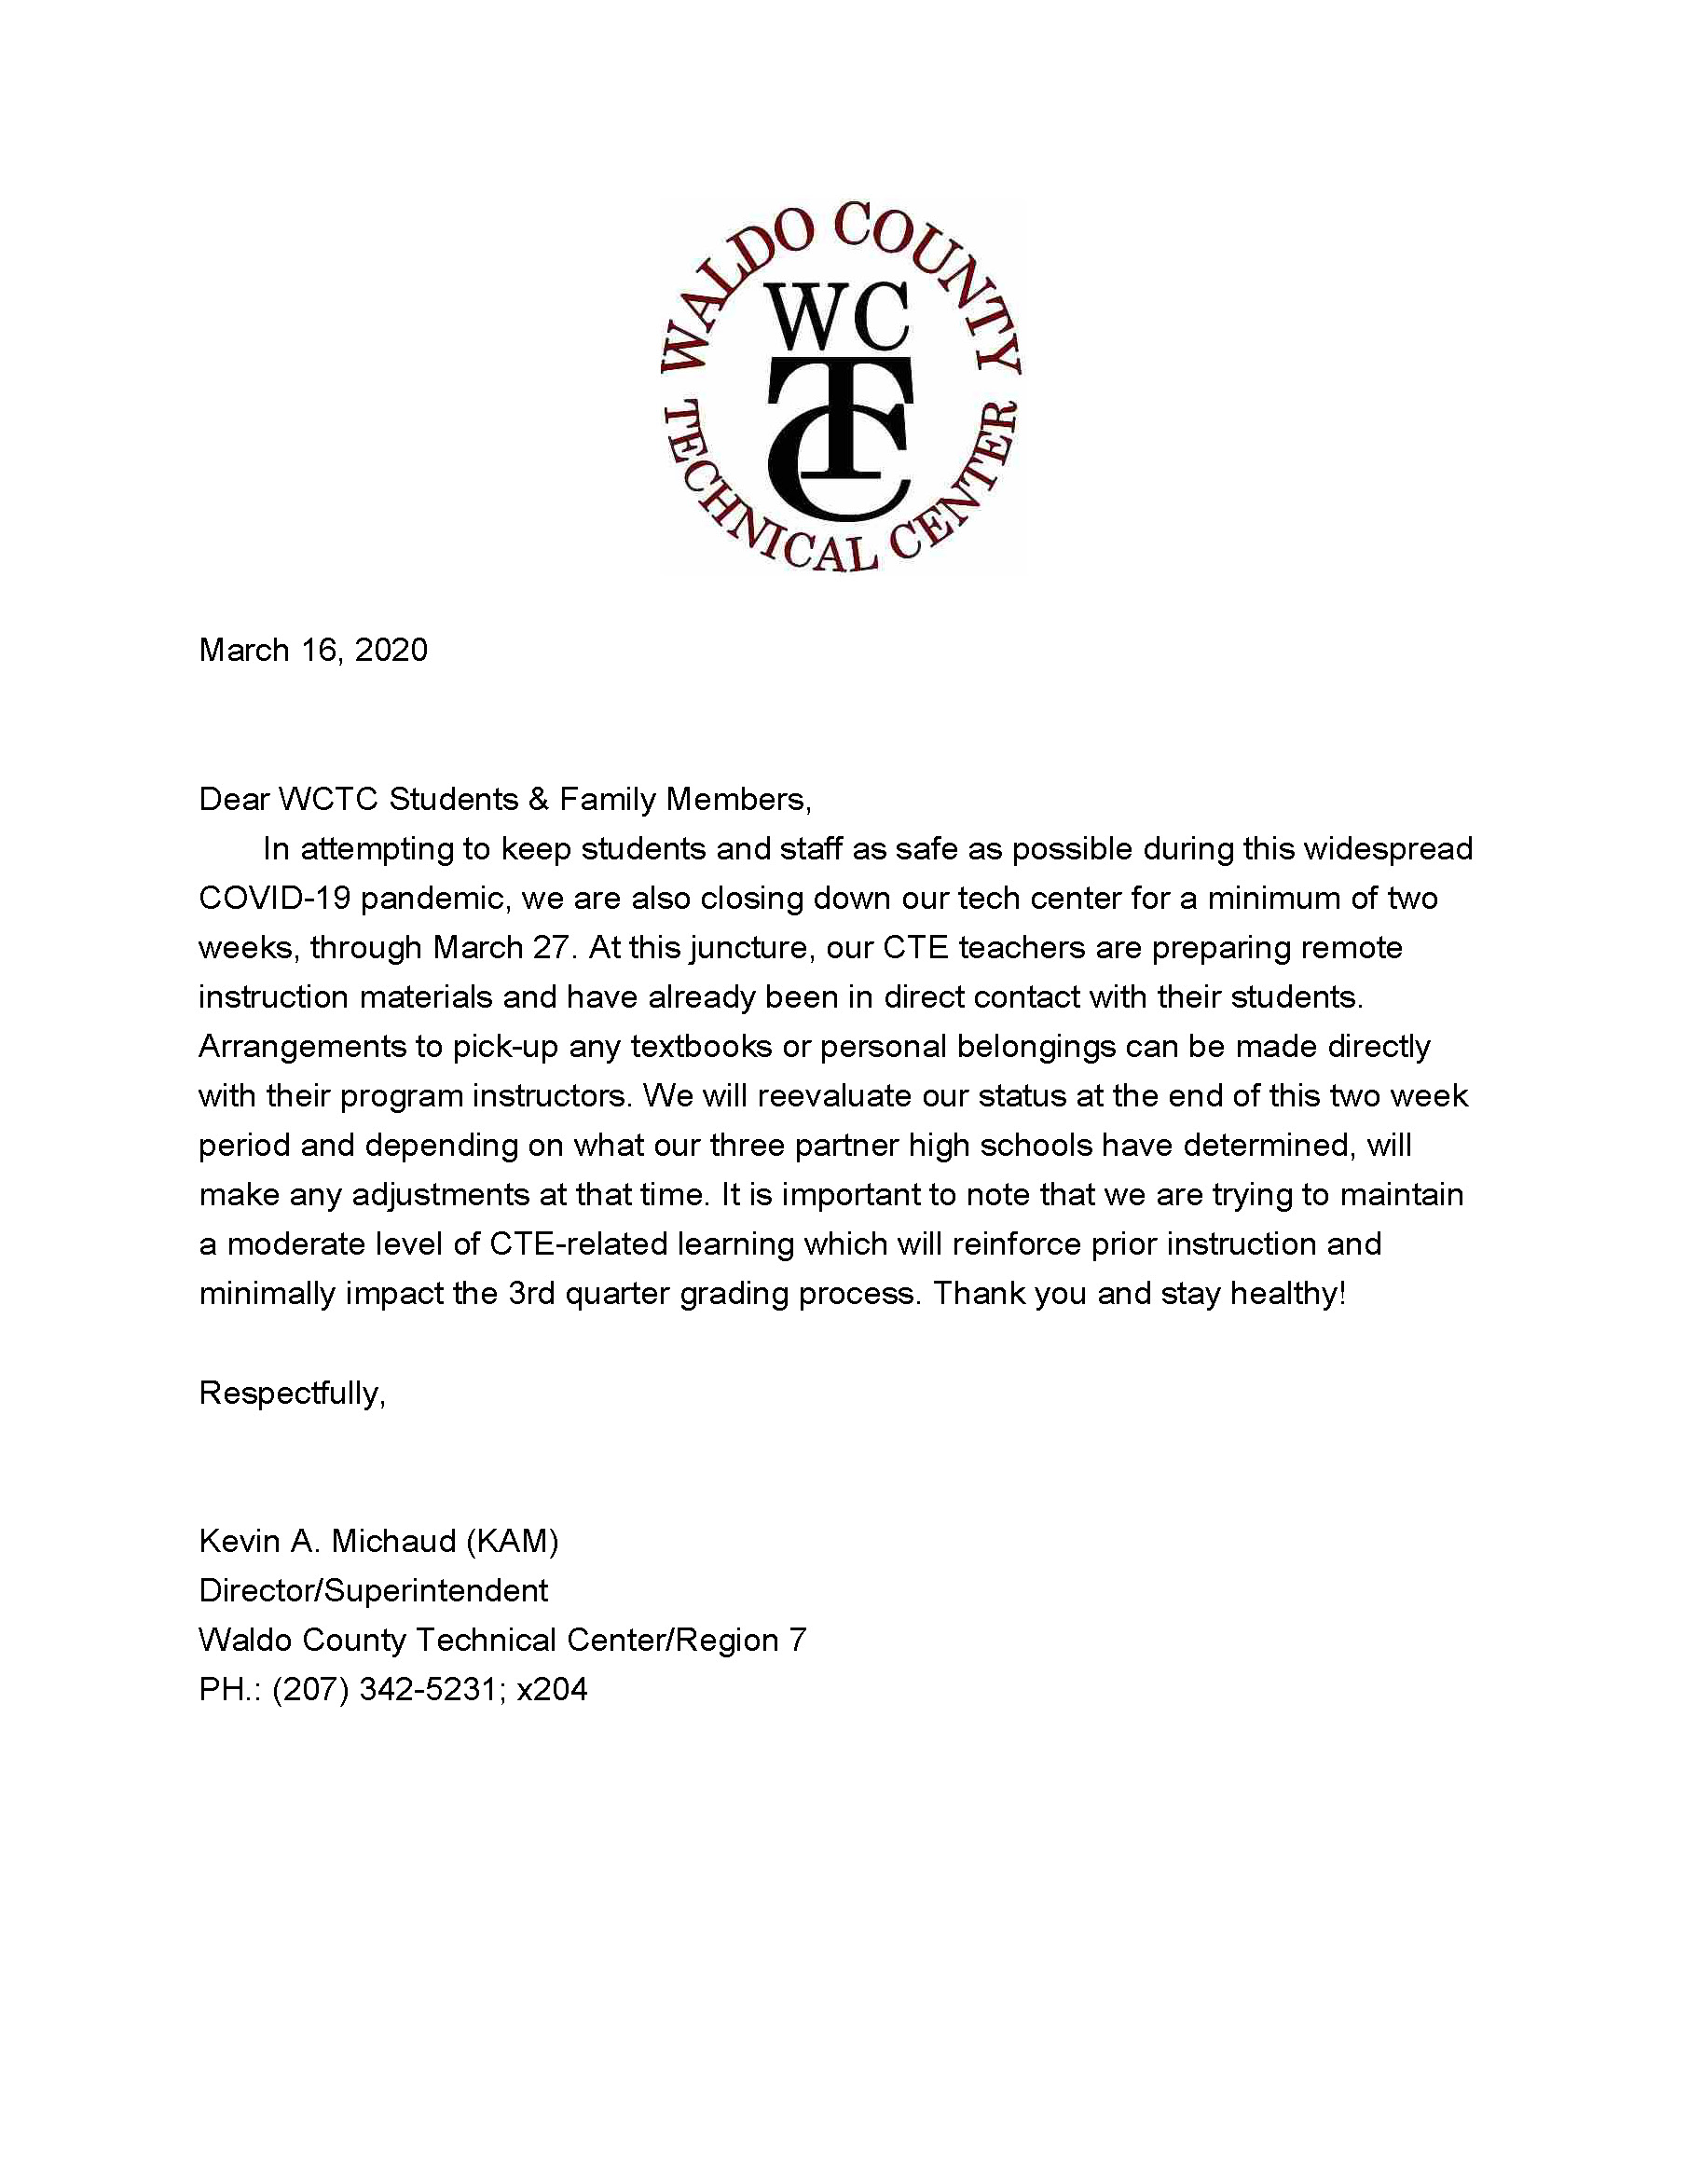 Closure Letter March 2020